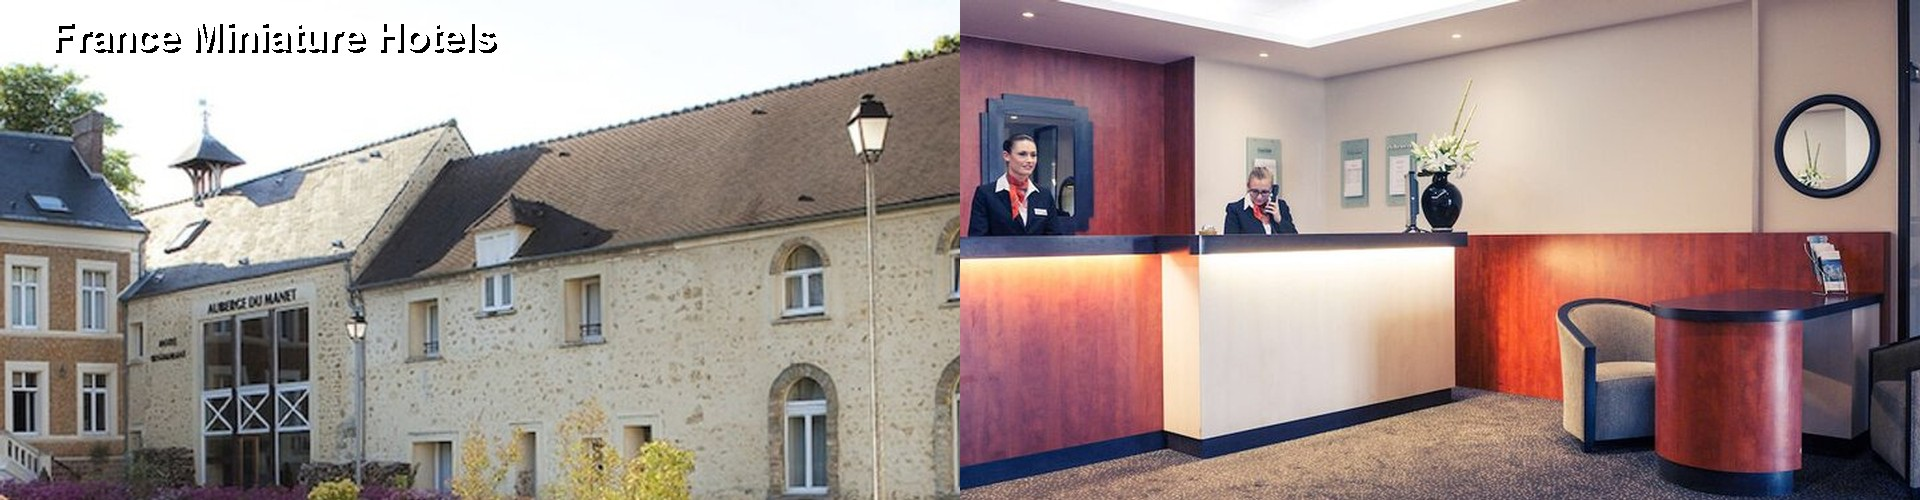 5 Best Hotels near France Miniature